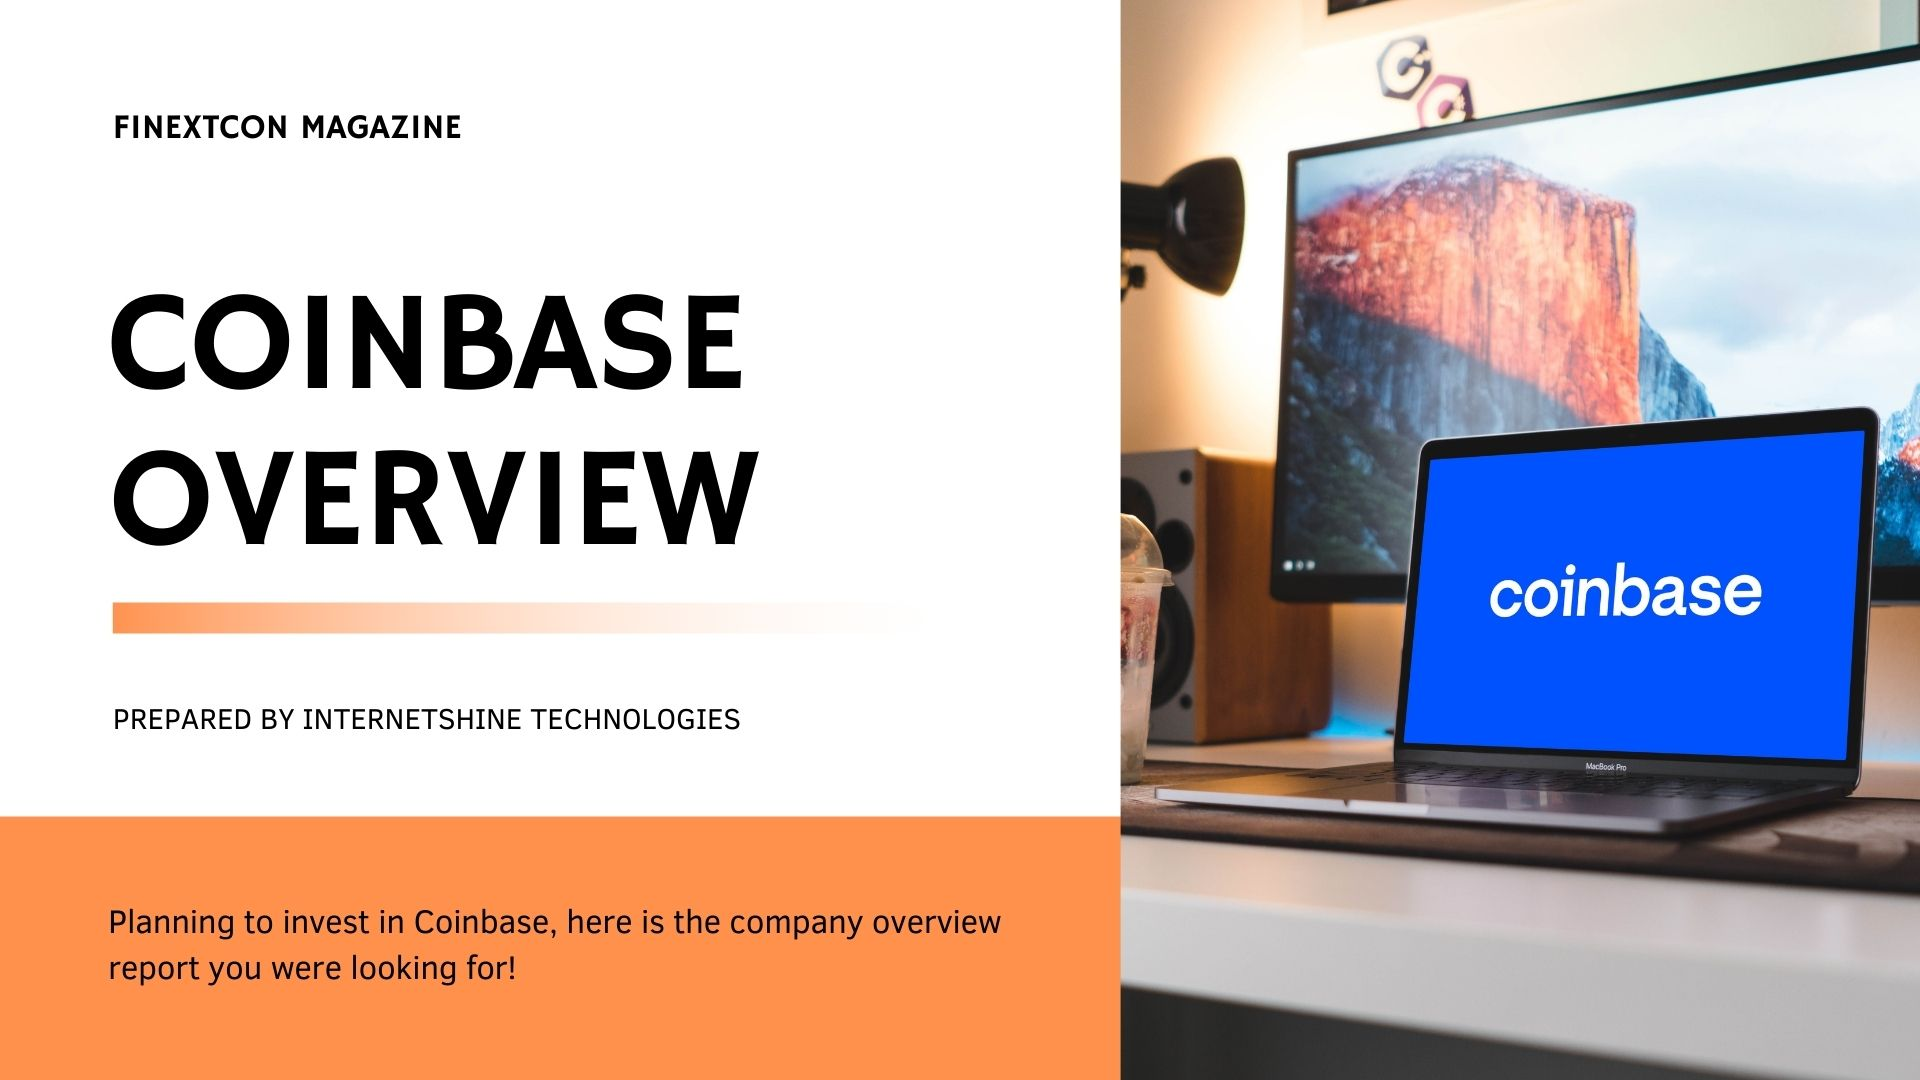 Coinbase company overview report